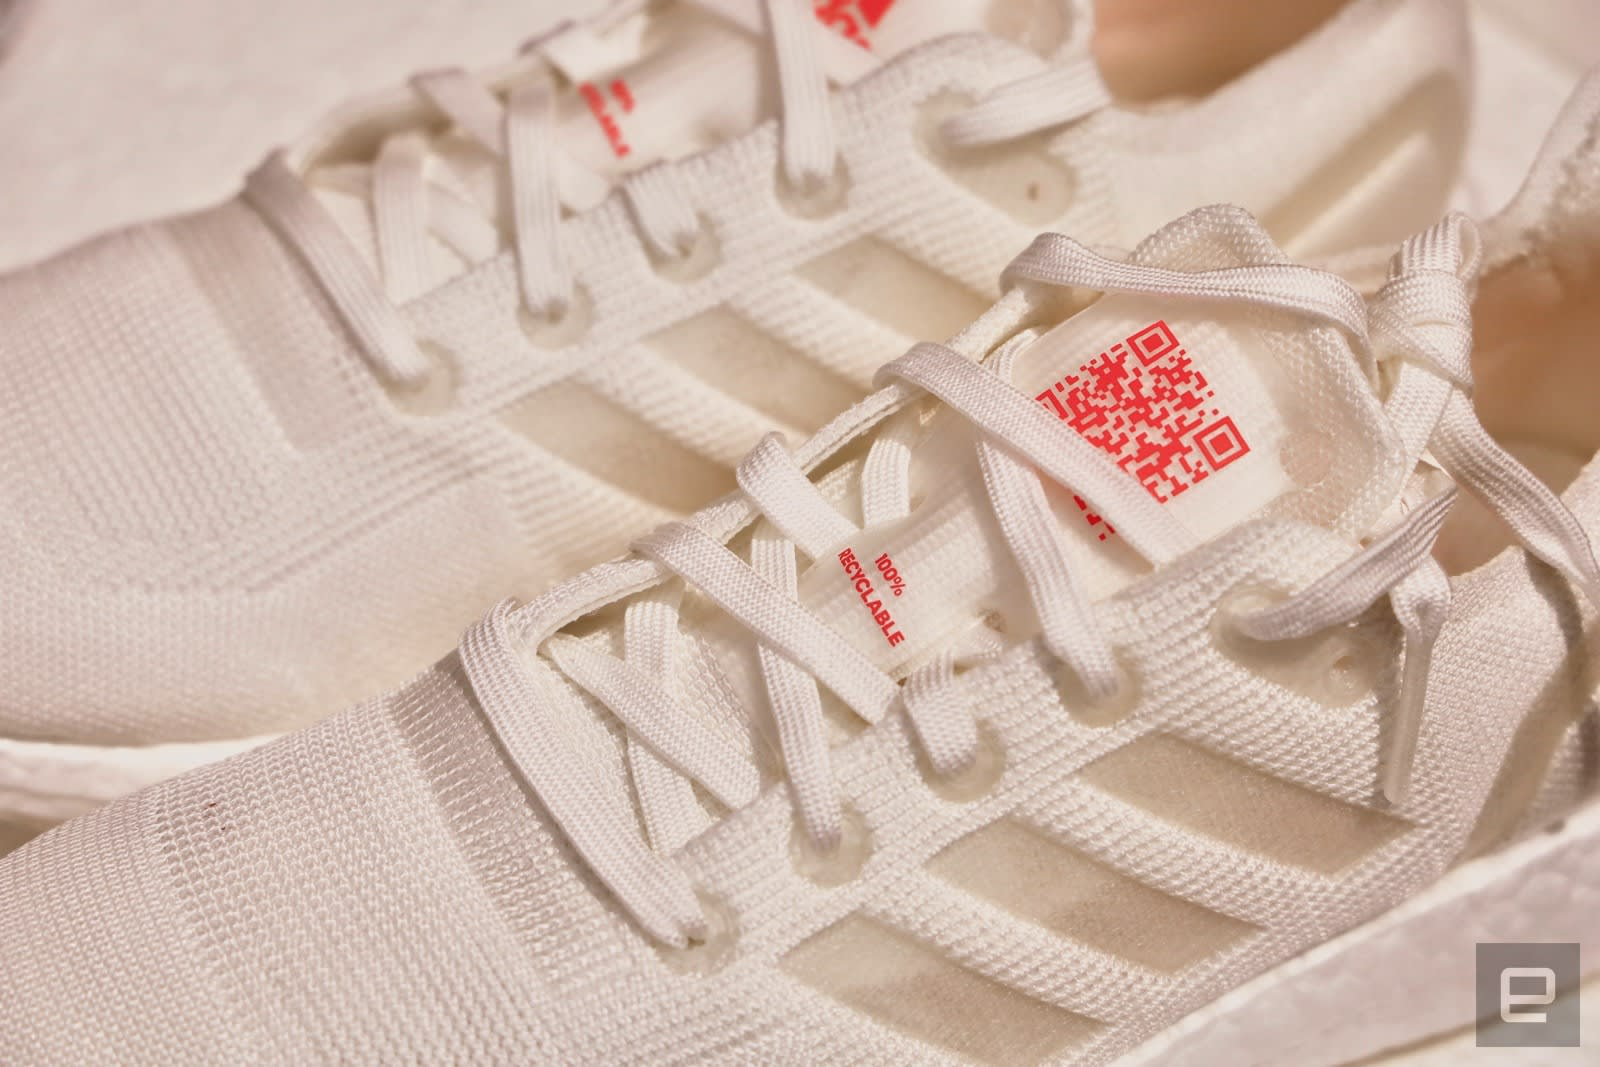 Adidas pledges to make 11million trainers from recycled